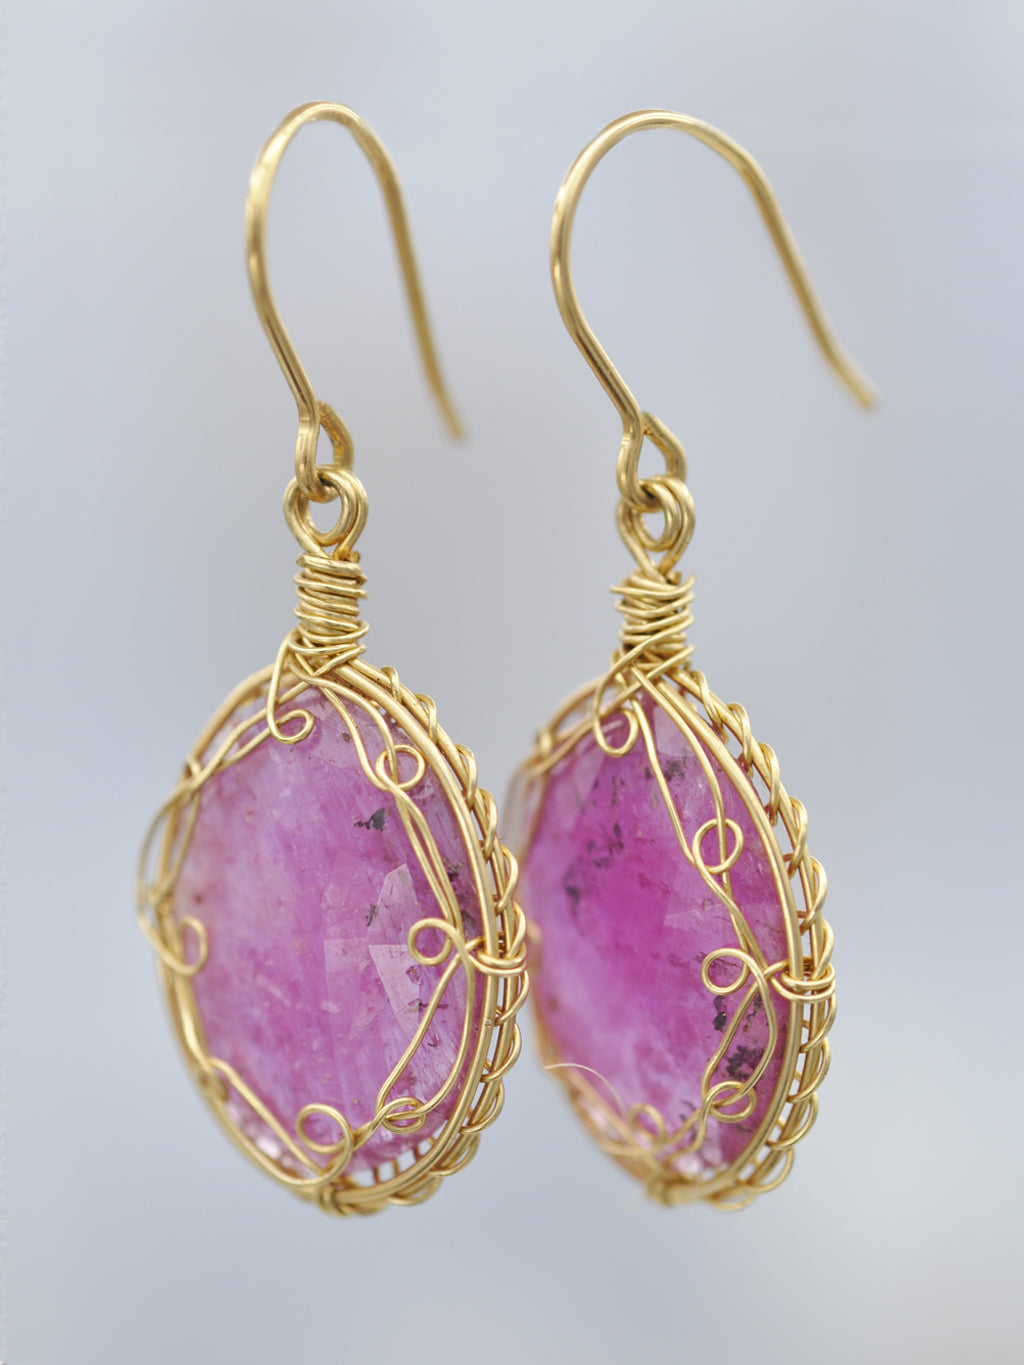 Framed Oval Pink Sapphire Earrings